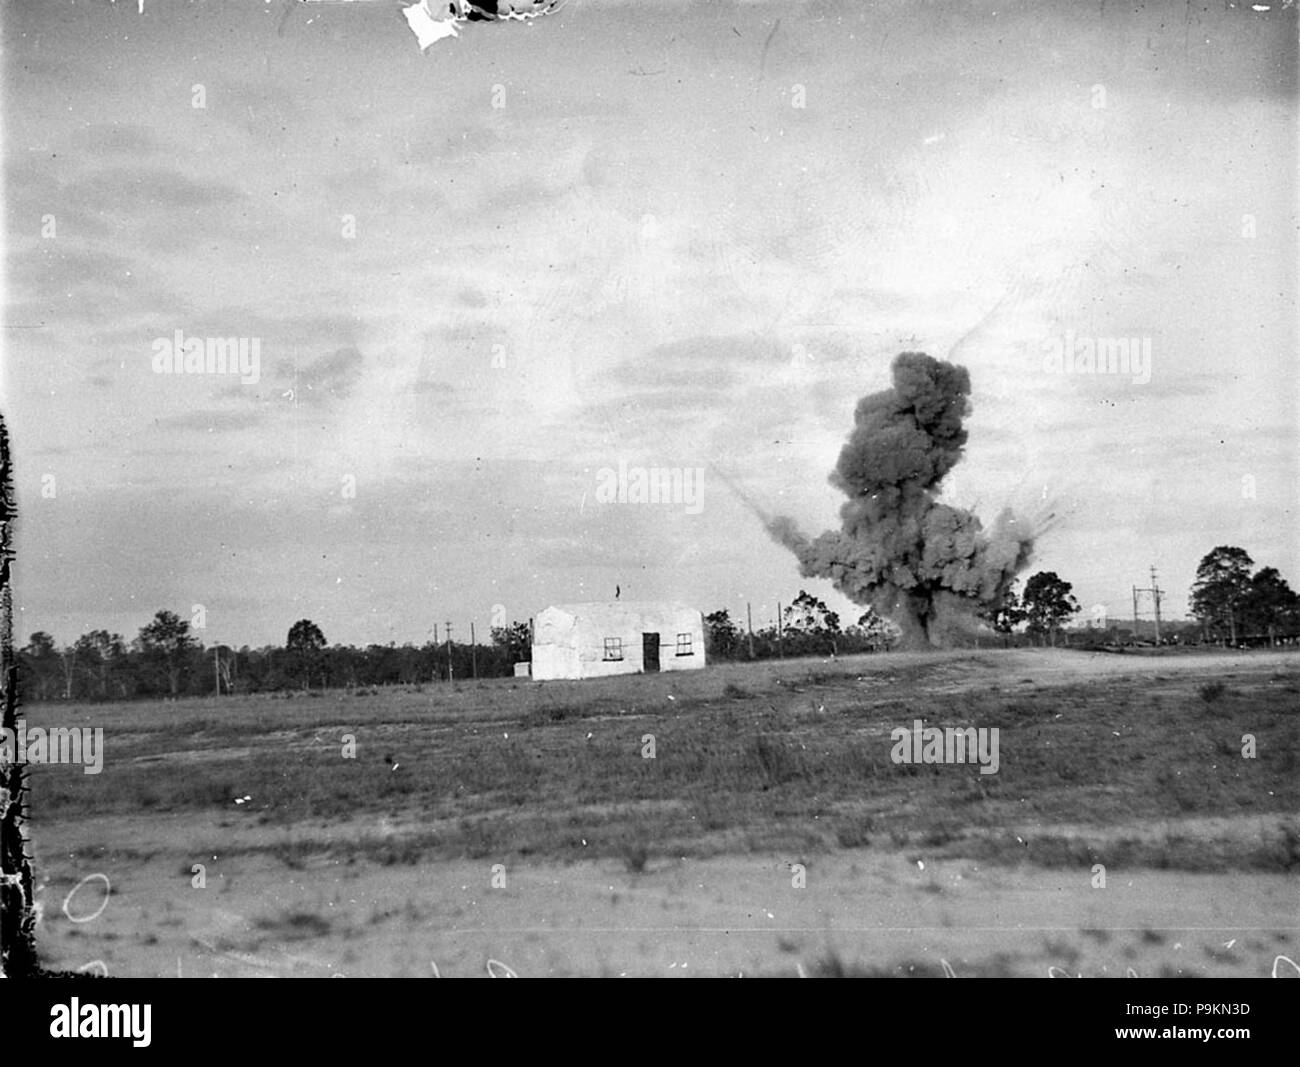 287 SLNSW 8039 Aero Pageant at Hargrave Park aerial bombing of a dummy house - Stock Image